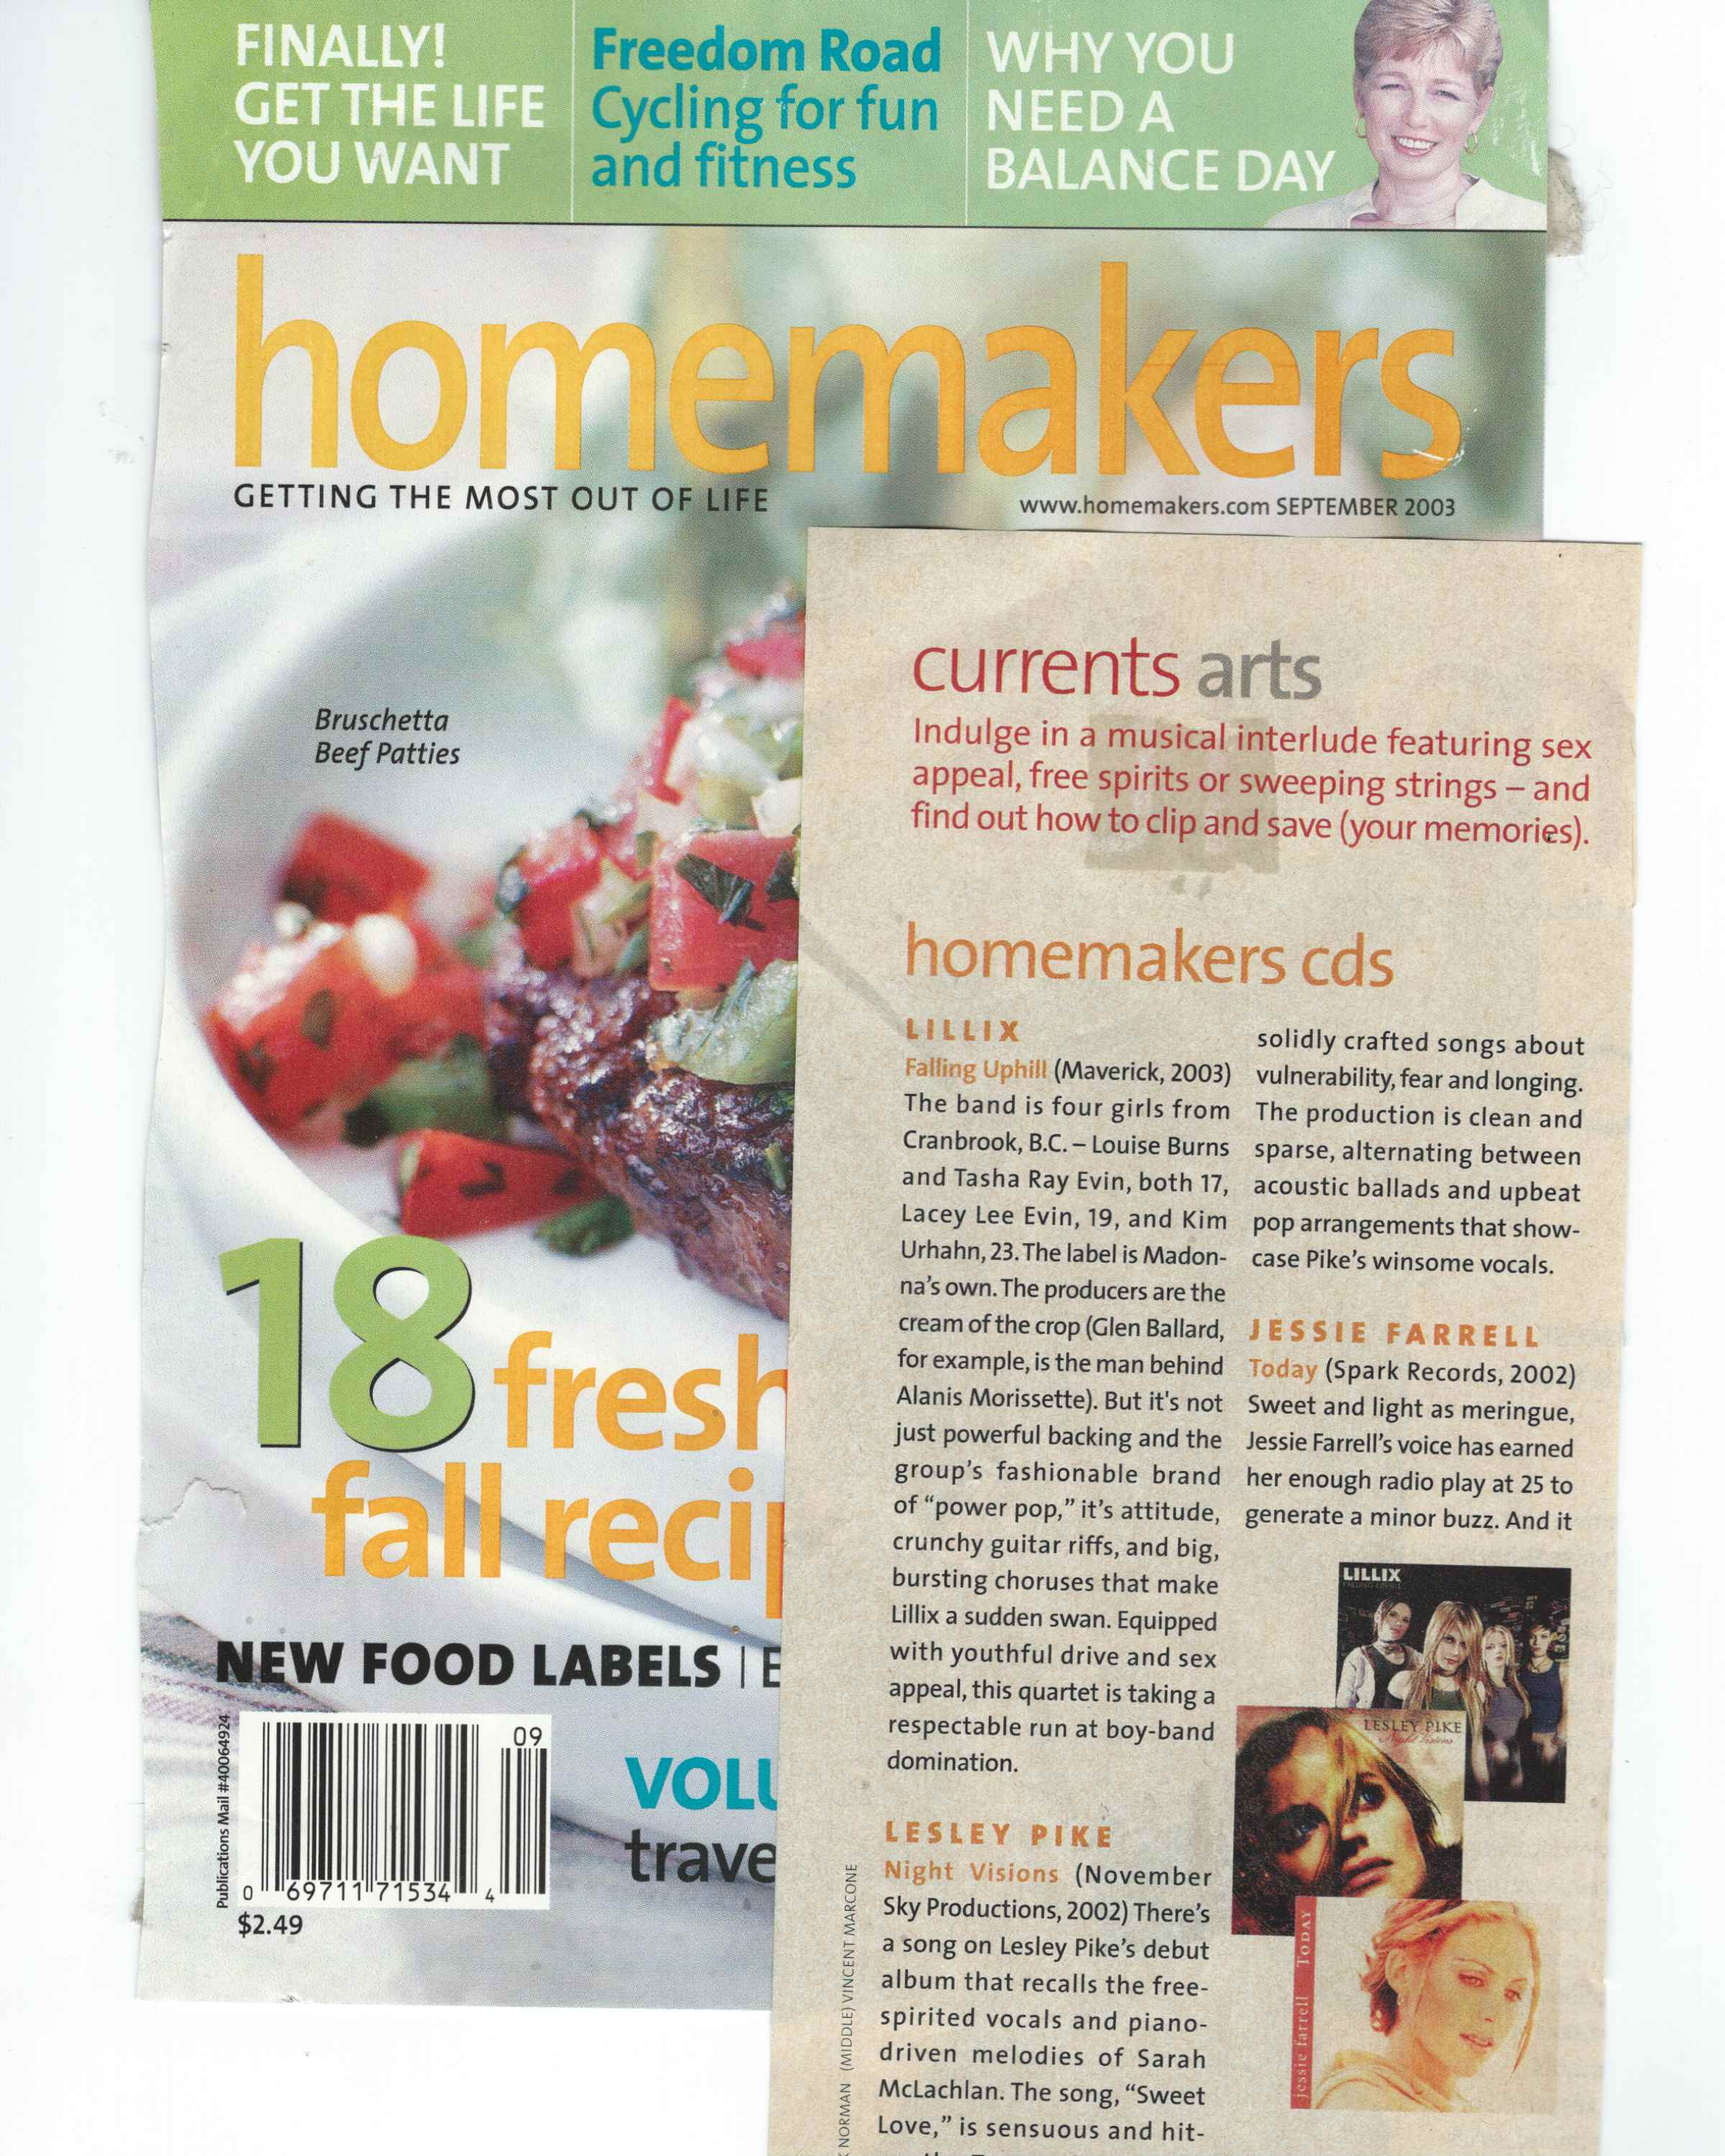 Lesley Pike's 'Night Visions' featured in Homemaker's magazine